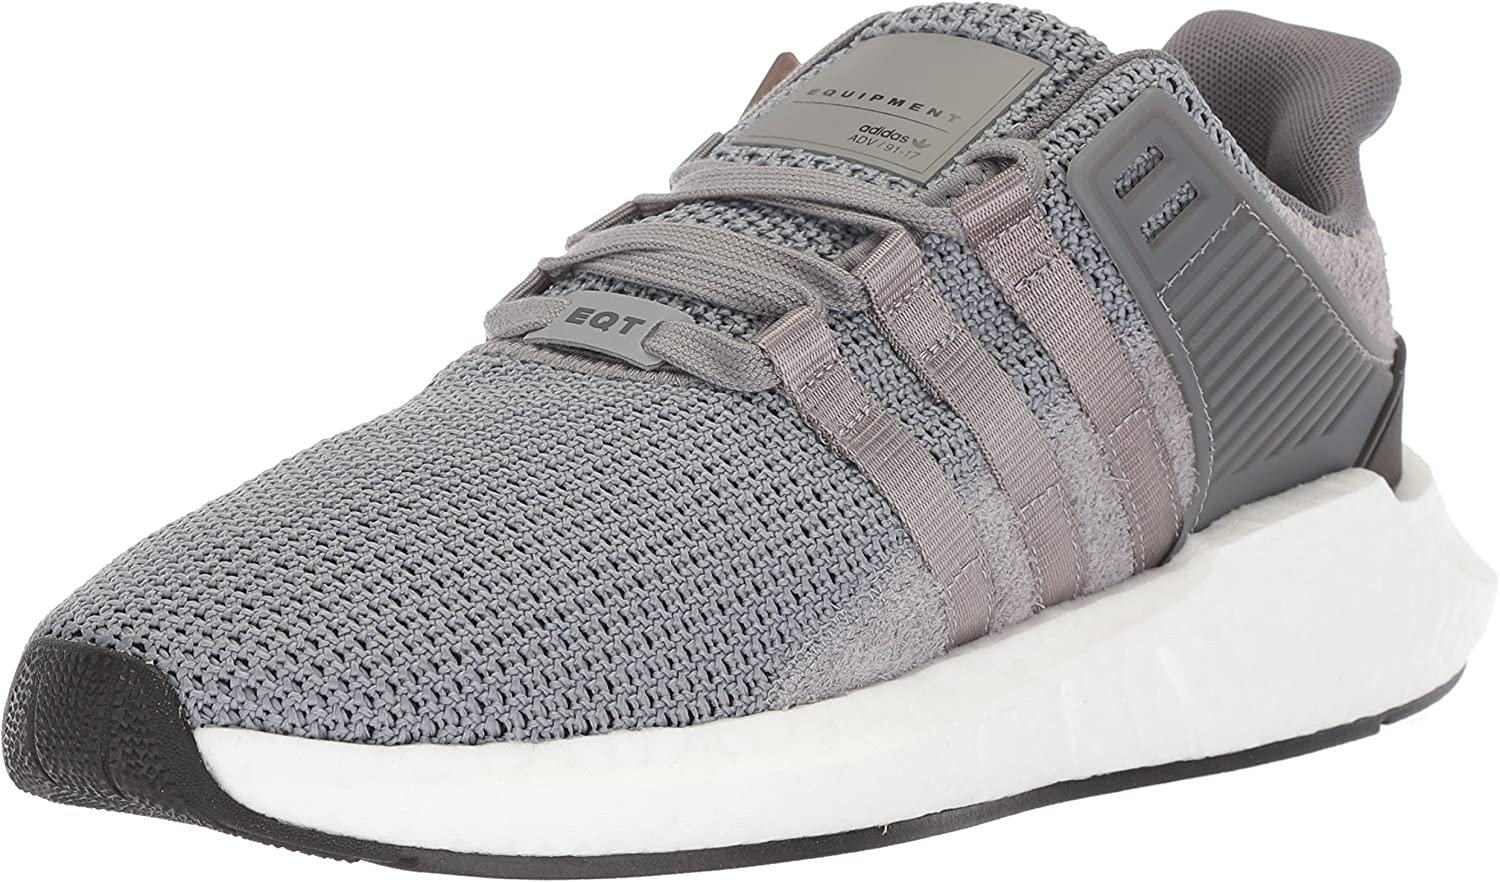 adidas Originals Men s EQT Support 93 17 Running Shoe, Grey Grey White, 9 M US